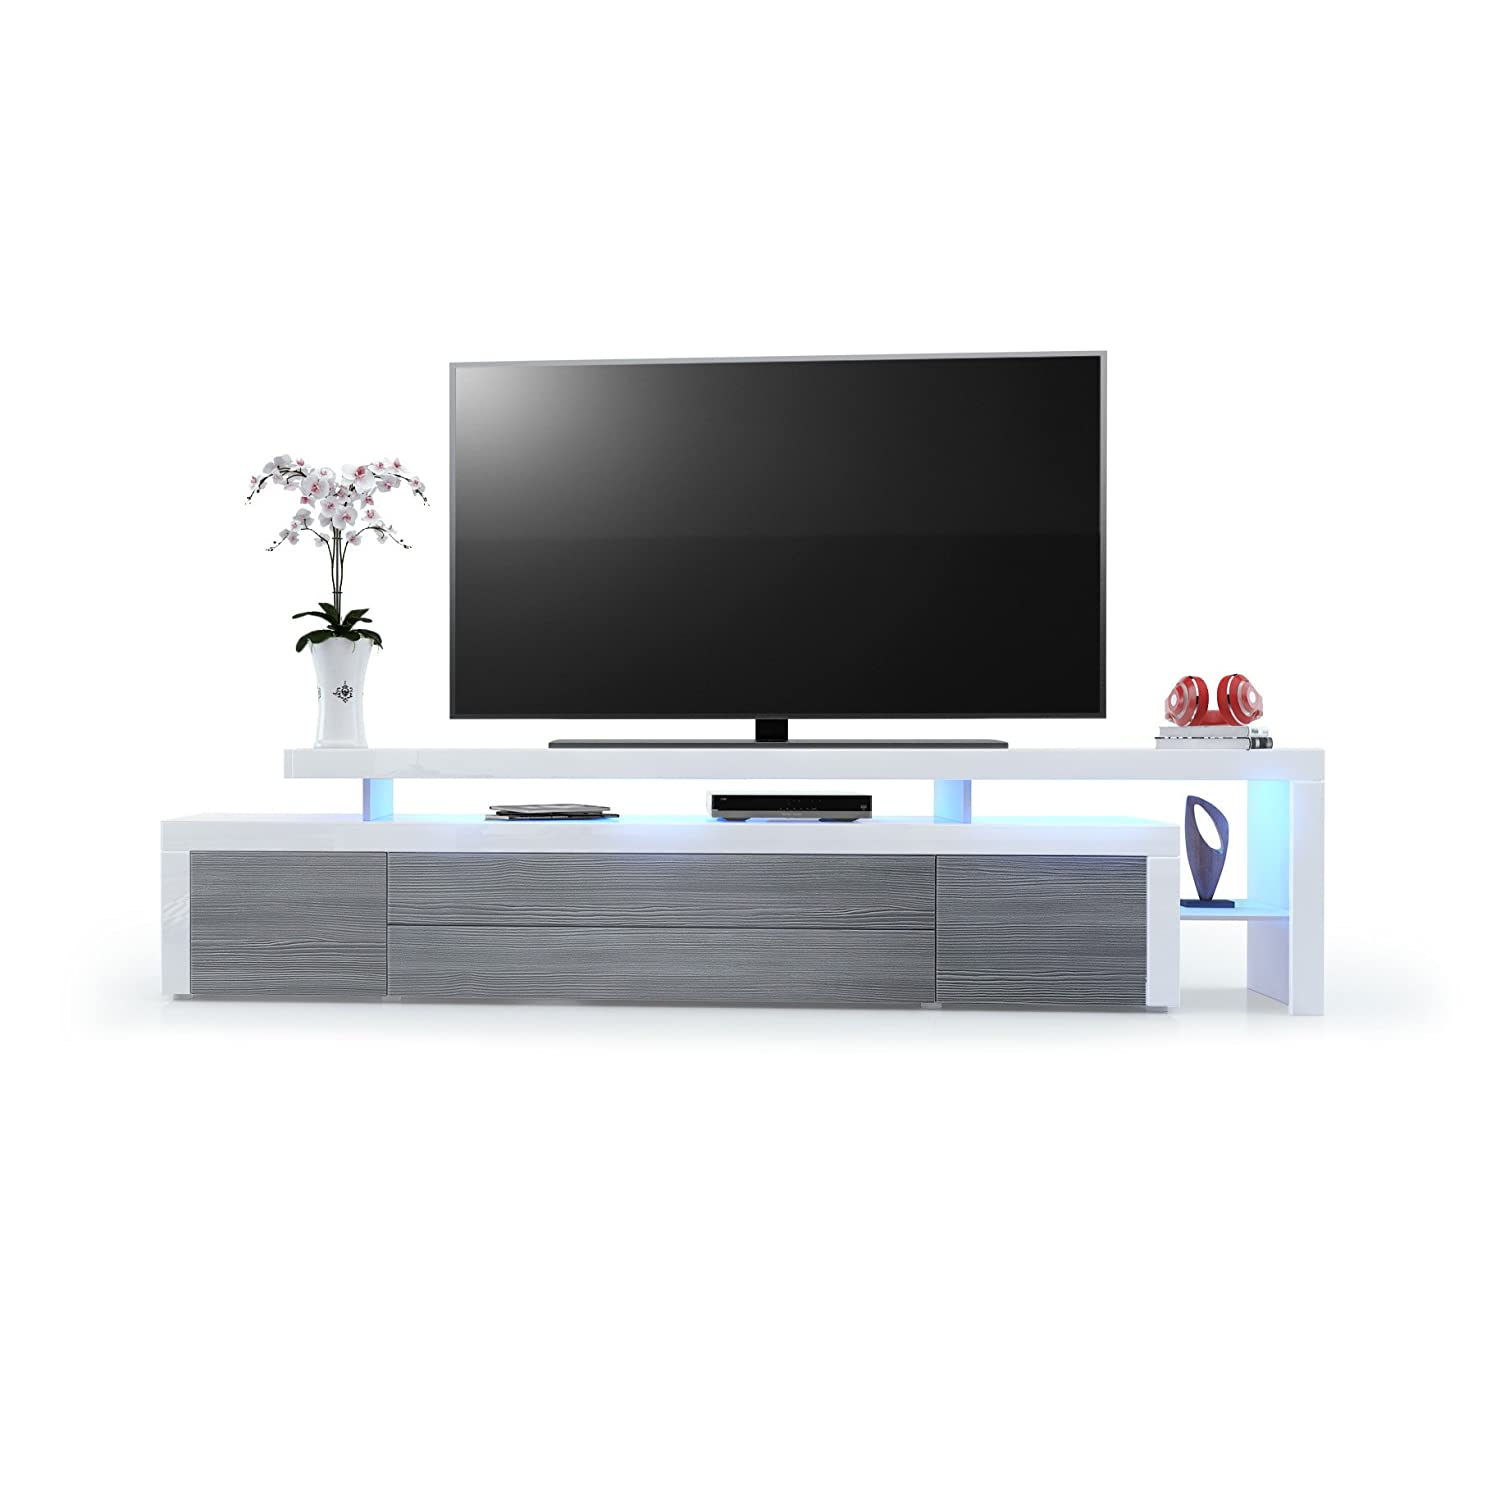 Tv Stand Unit Leon V3 Carcass And Raised Stand In White High  # Vladon Meuble Tv